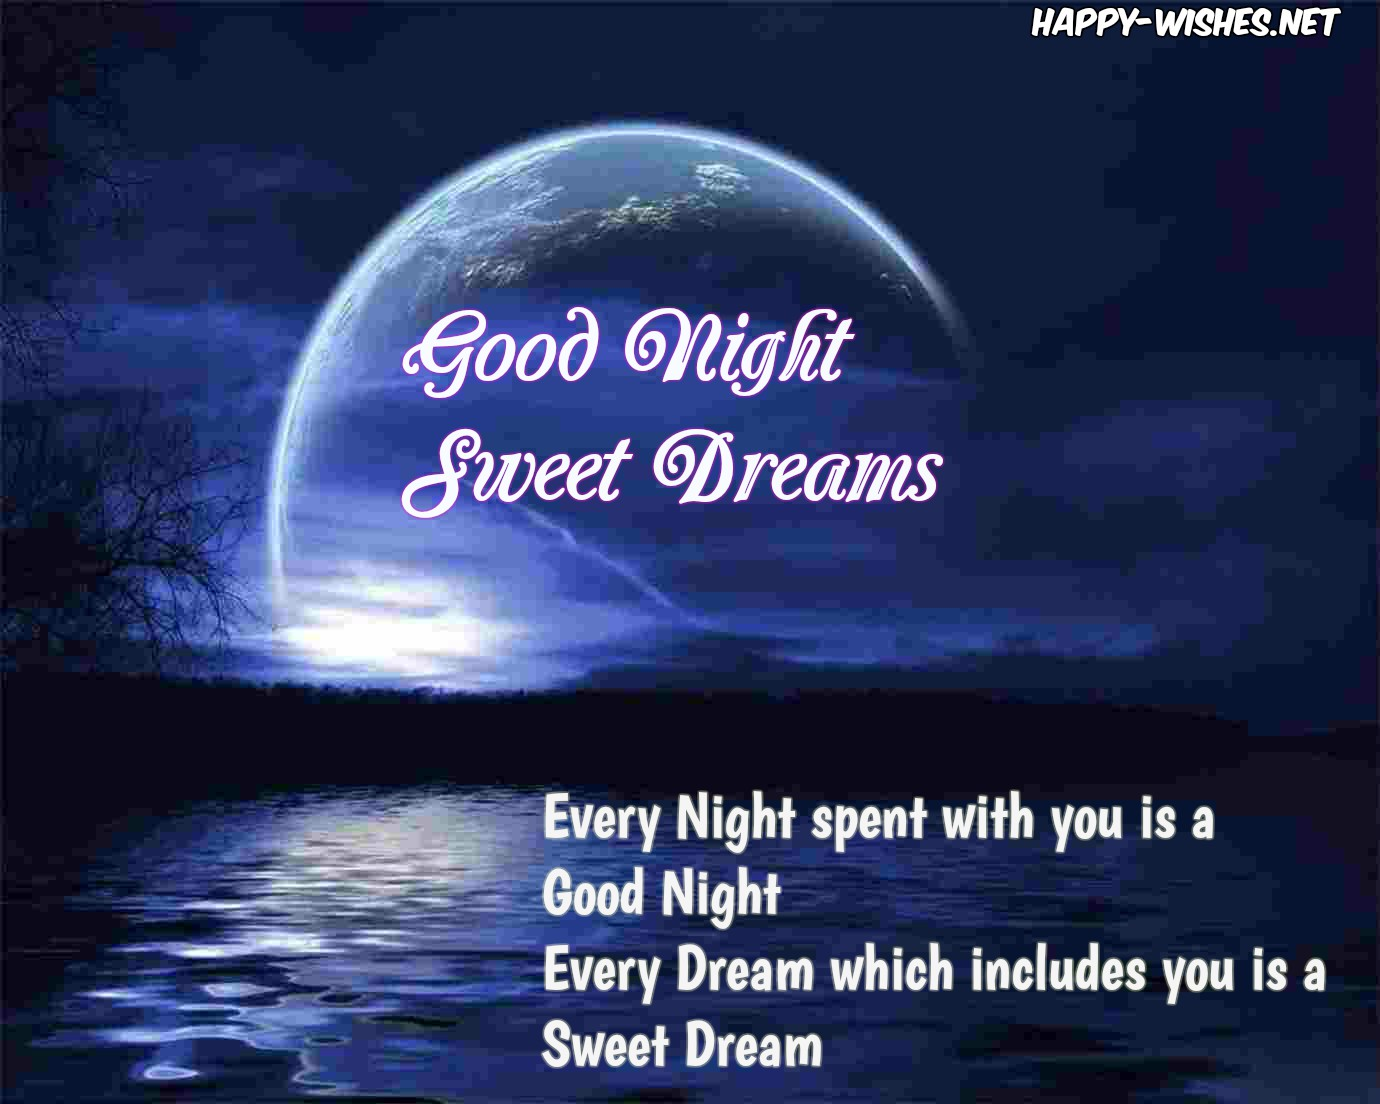 Now You Can Wish Good Night Sweet Dreams And Good Night Wishes Quotes And  Also Free Beautiful Good Night Wallpapers Using Below Good Night And Sweet  Dreams ...